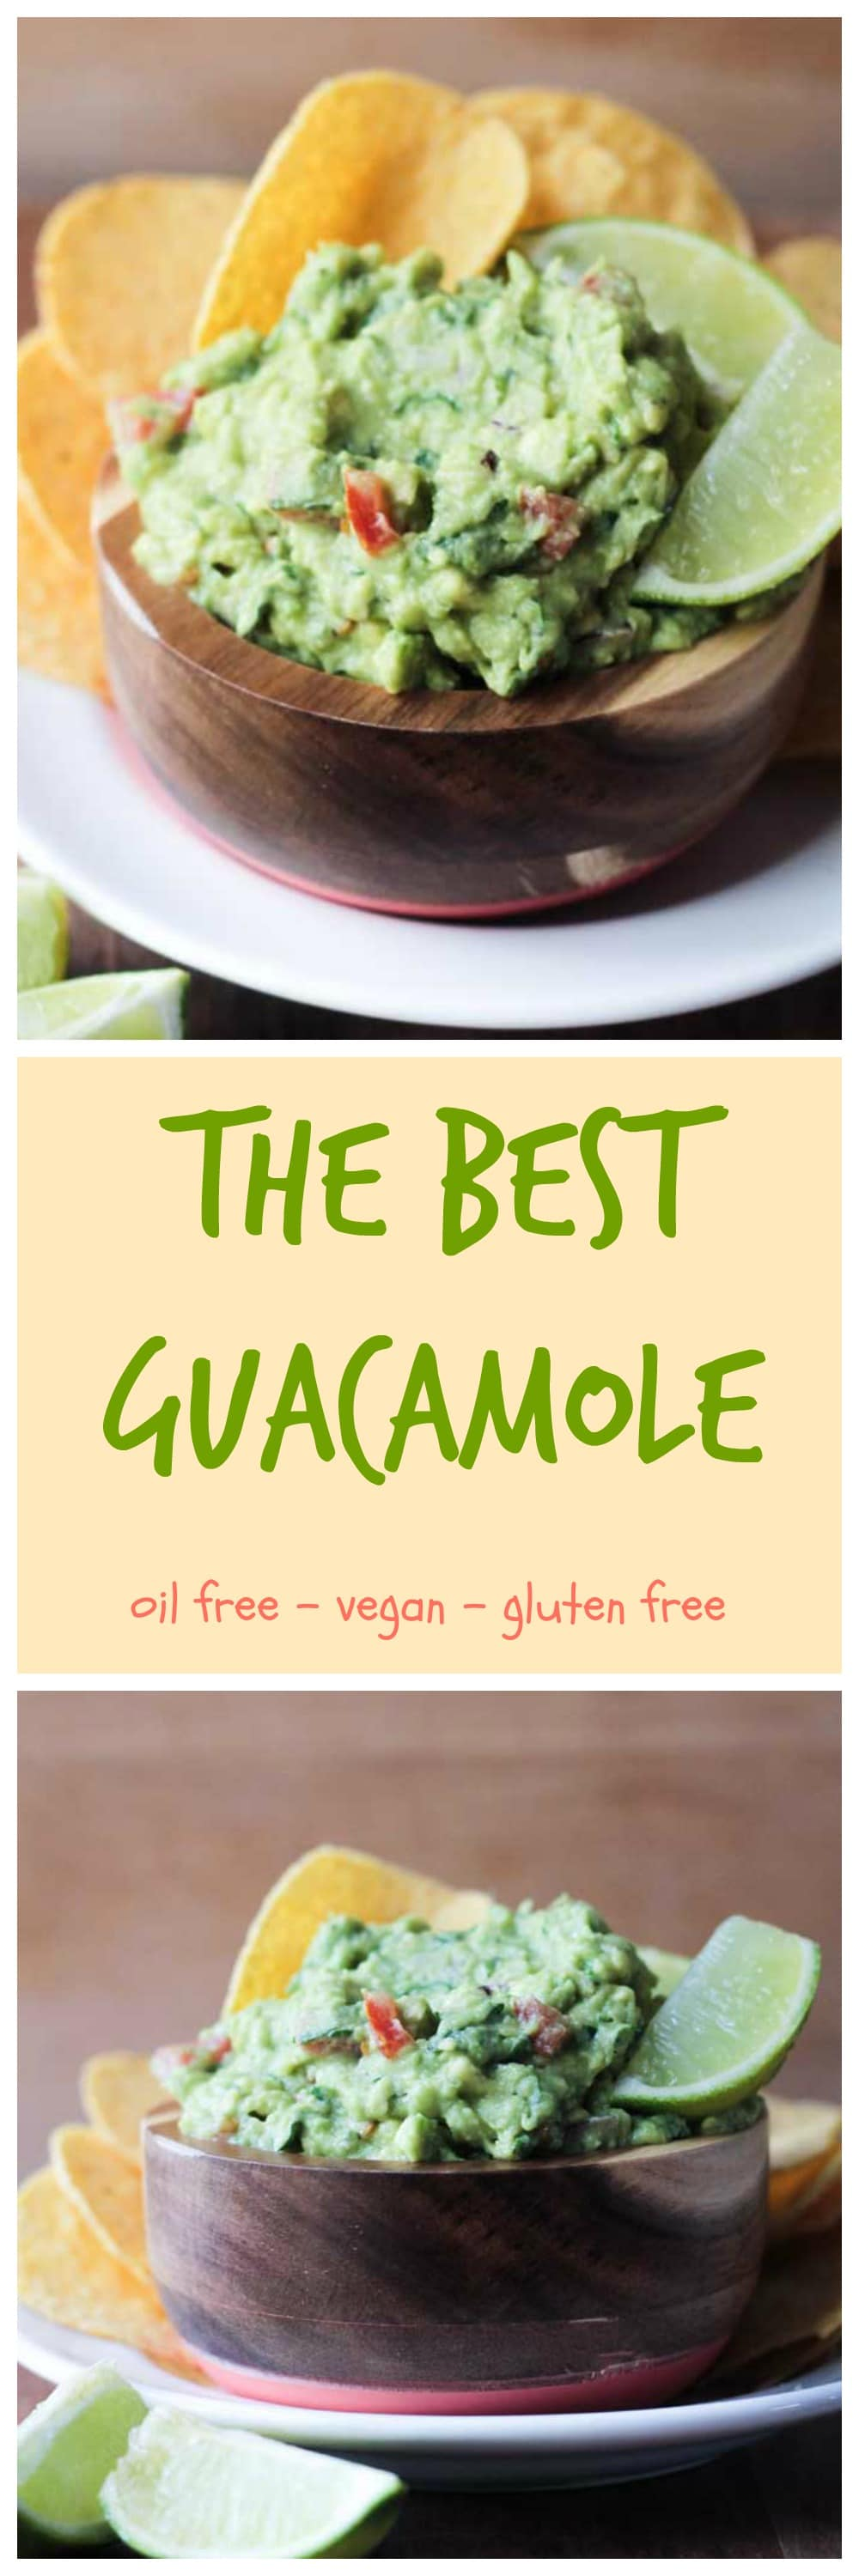 The Best Guacamole - super quick and easy and loaded with nutrients from avocado, tomato, red onion, cilatnro, jalapeño, and limes. Grab some chips and dig in for a healthy snack! #vegan #avocado #guacamole #appetizer #dairyfree